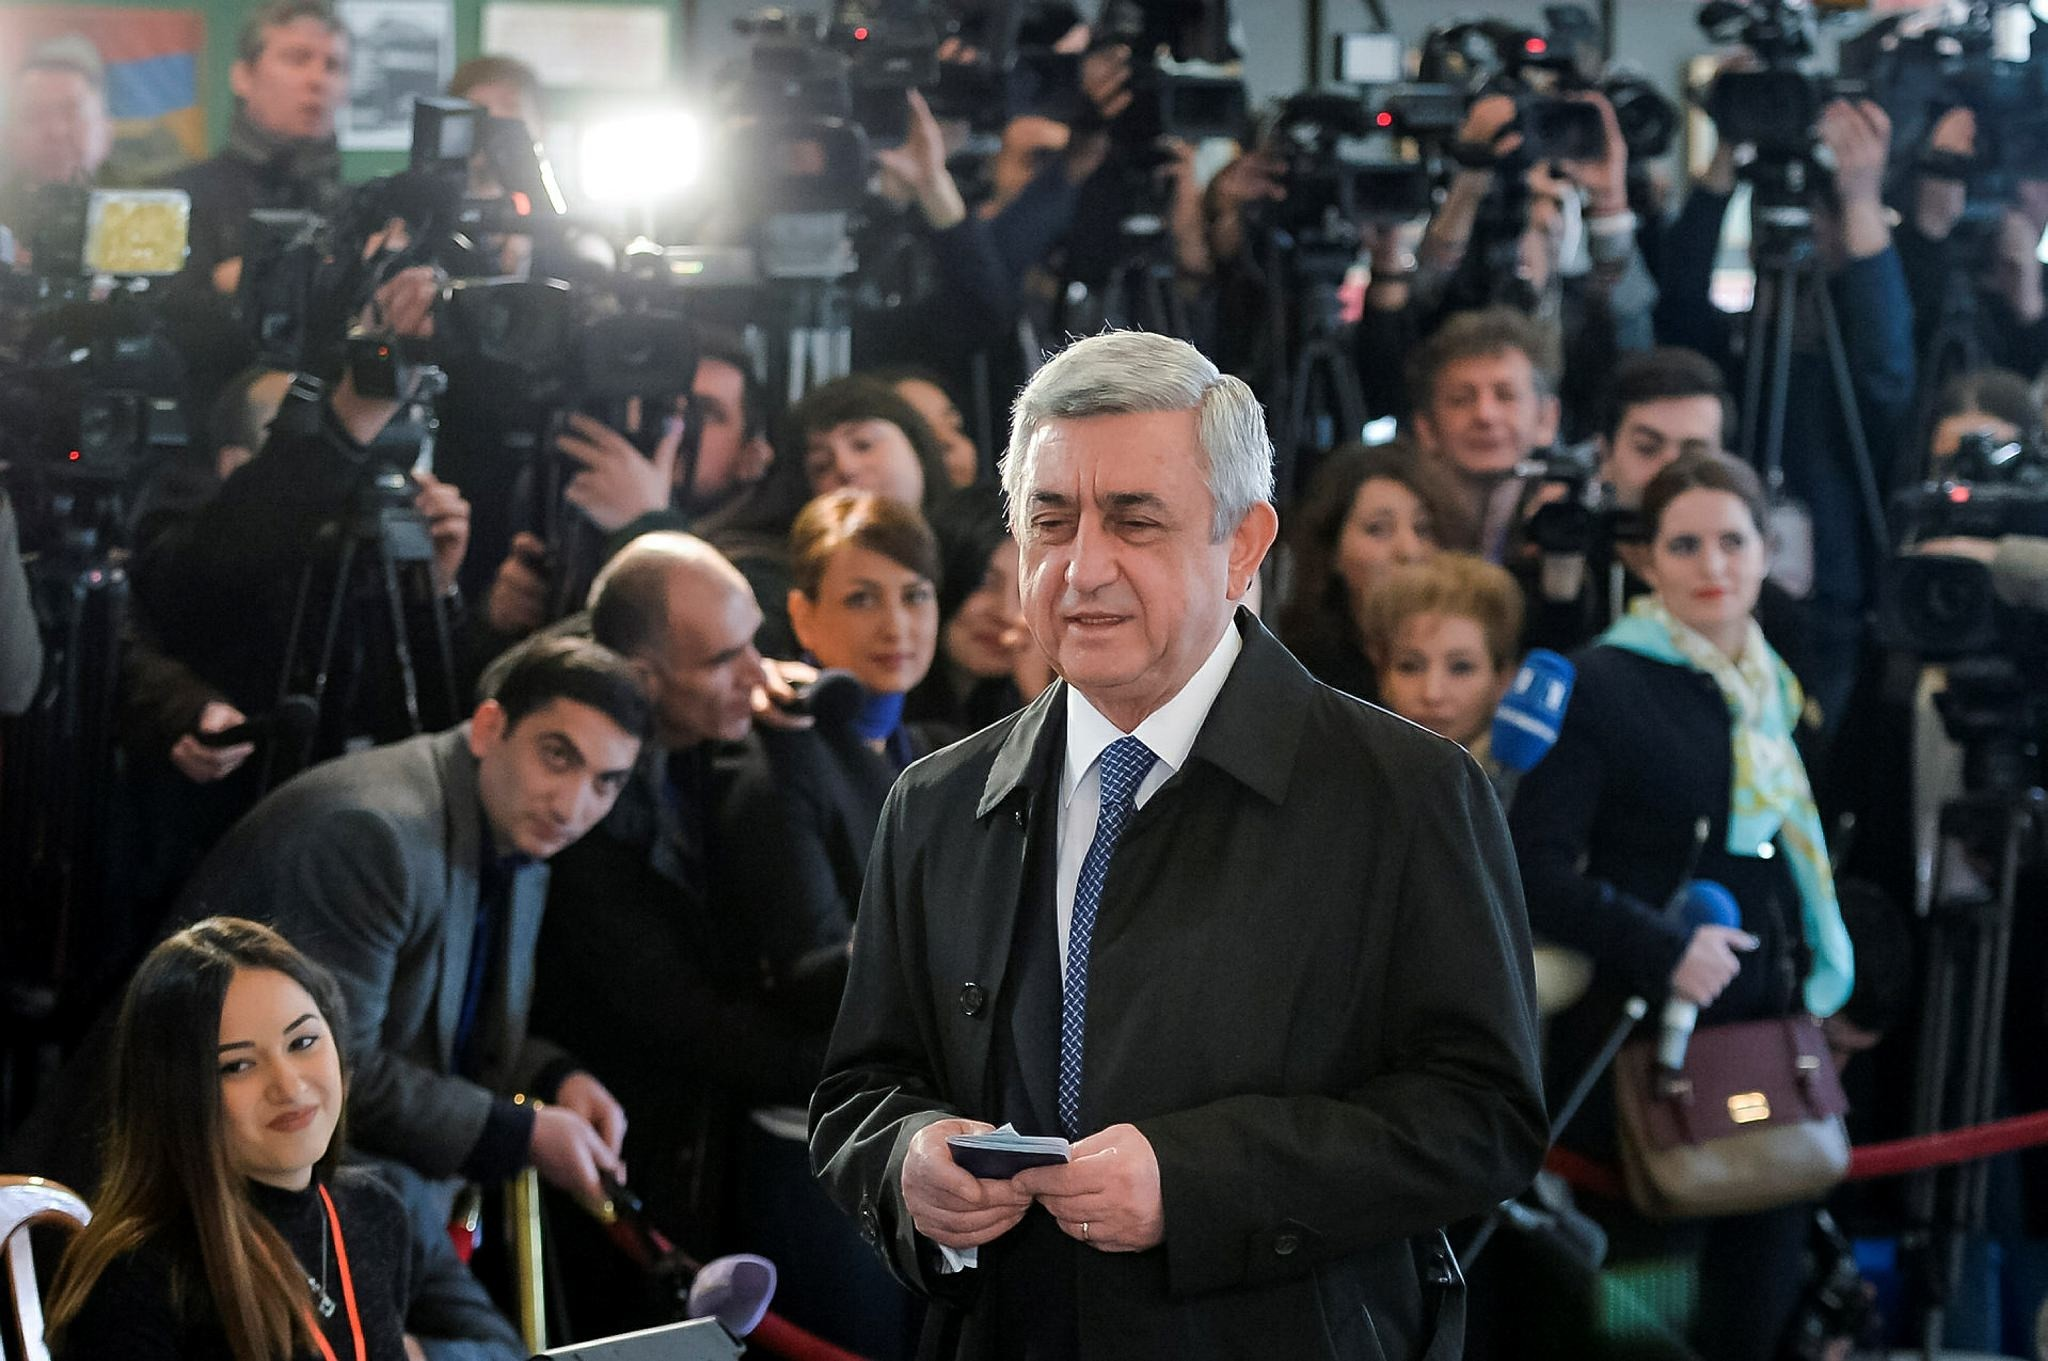 Armenia's President Serzh Sargsyan arrives at a polling station during a parliamentary election in Yerevan, Armenia. (AP Photo)